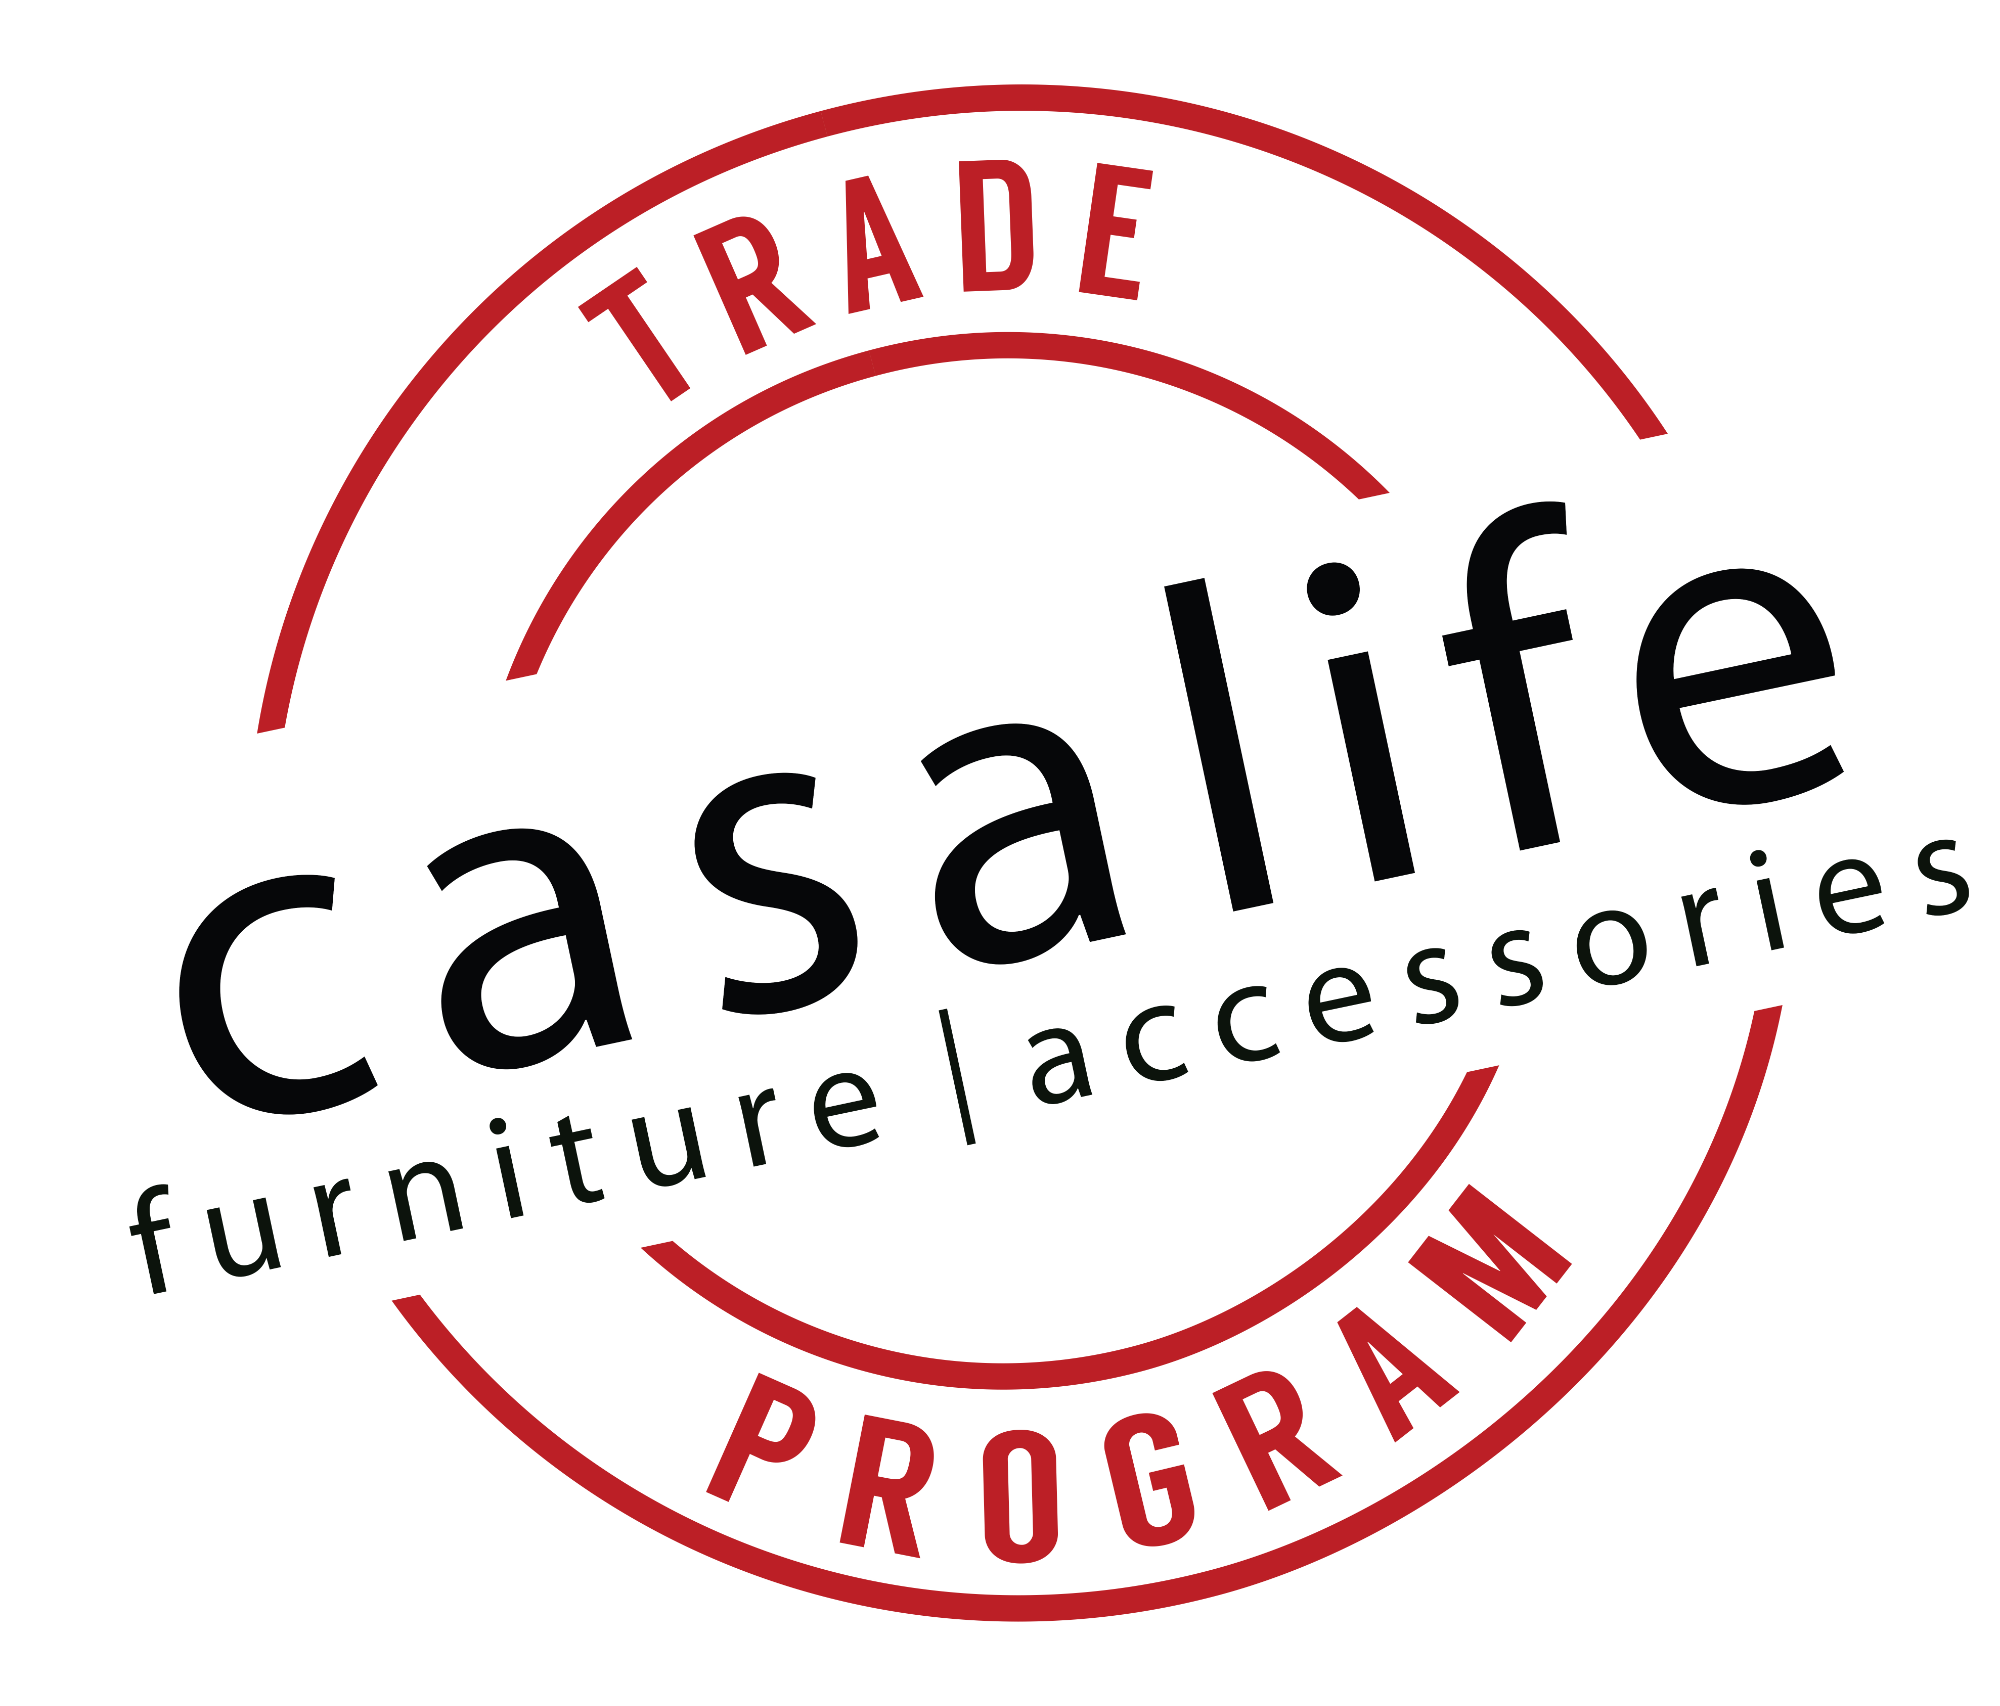 casalife trade logo